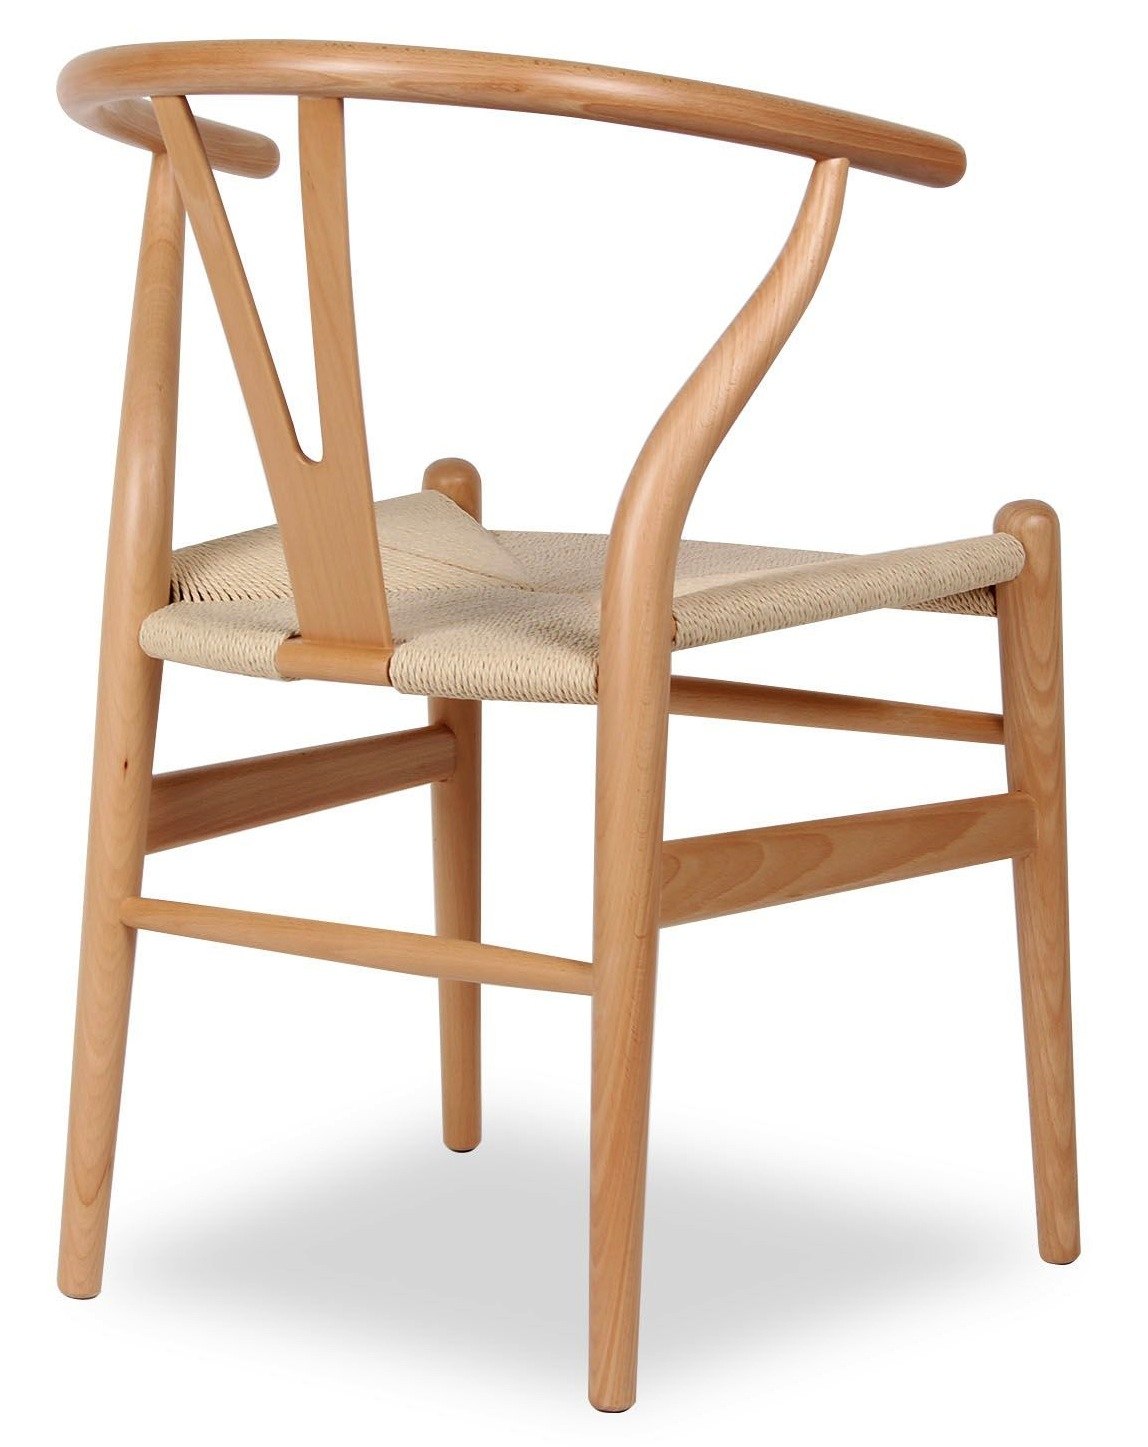 ... natural-wishbone-chair.jpg ... - Wegner CH24 Wishbone Chair - Many Colors And Finishes